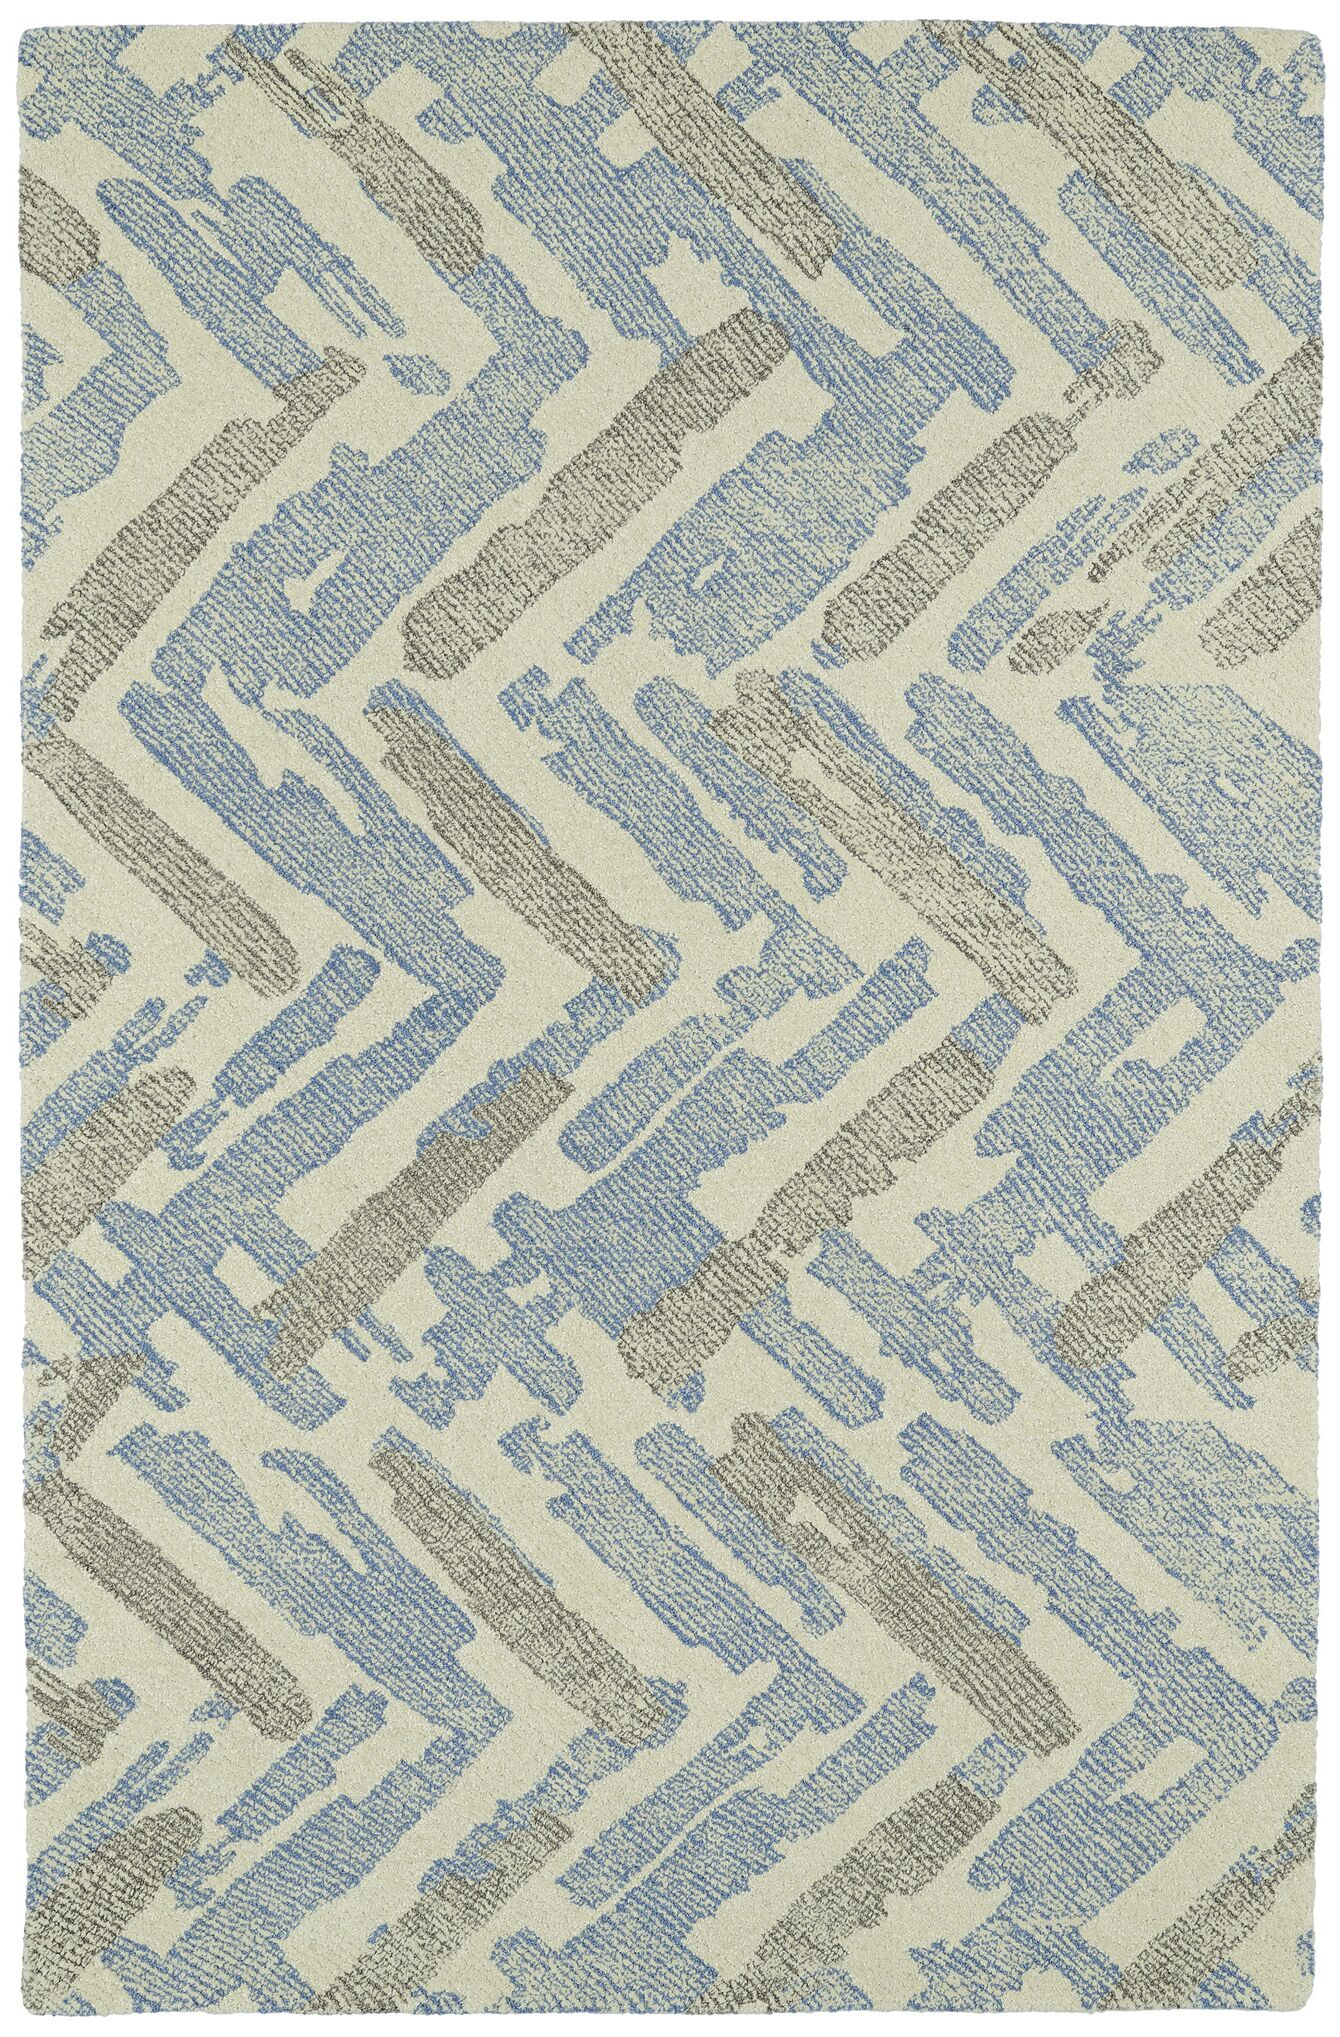 Louane Hand-Tufted Beige/Blue Area Rug Rug Size: Rectangle 9' x 12'